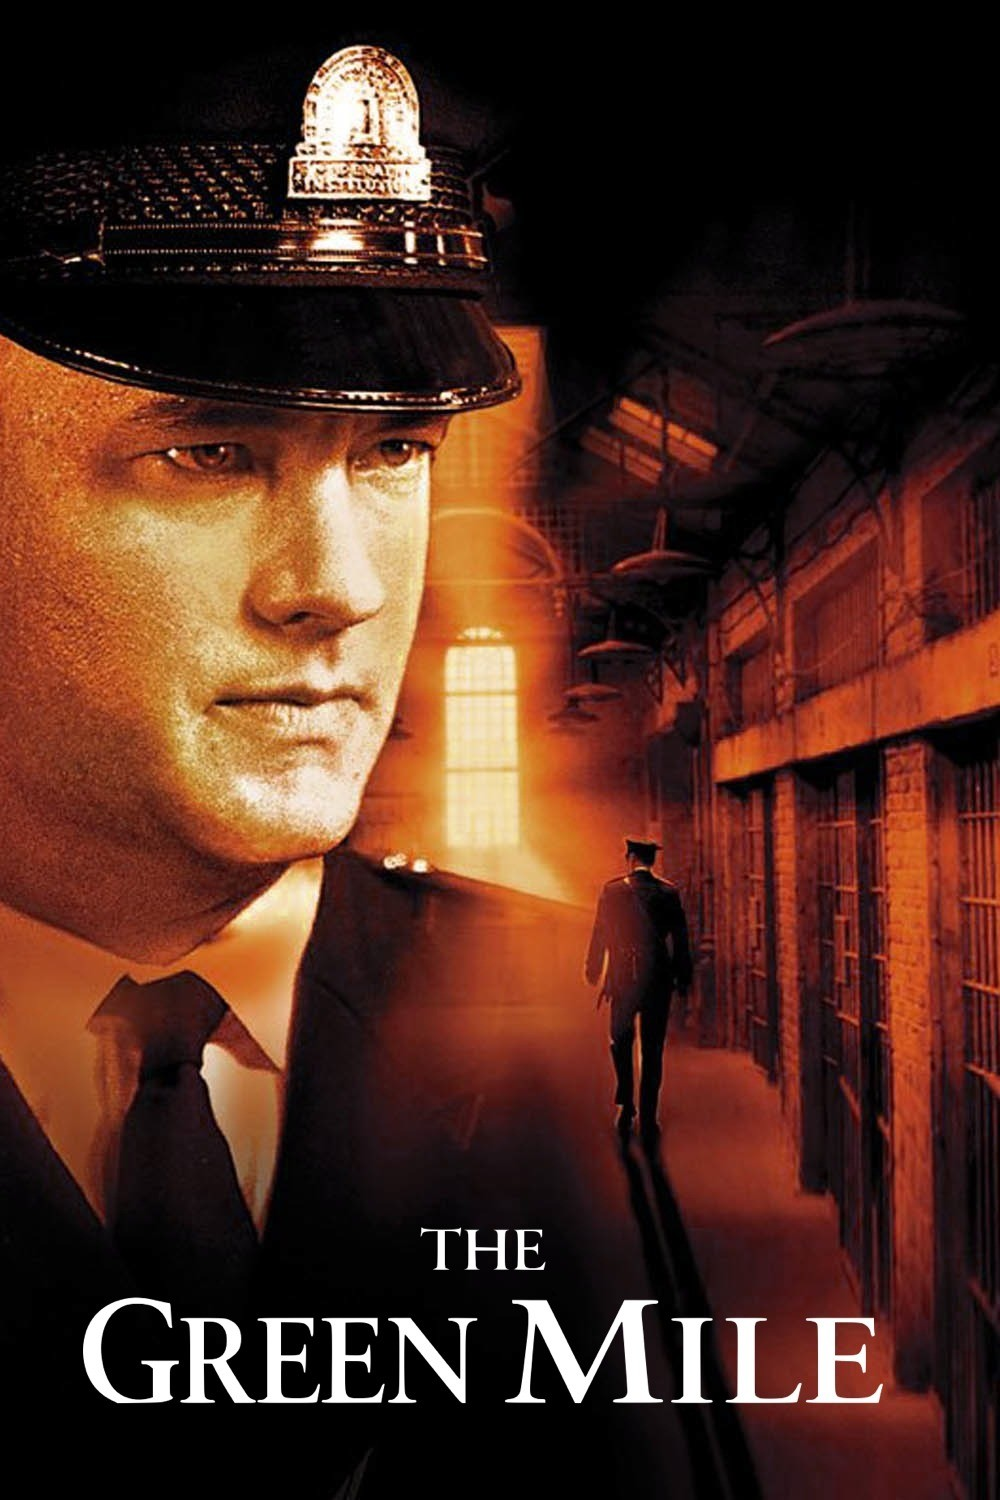 THE GREEN MILE